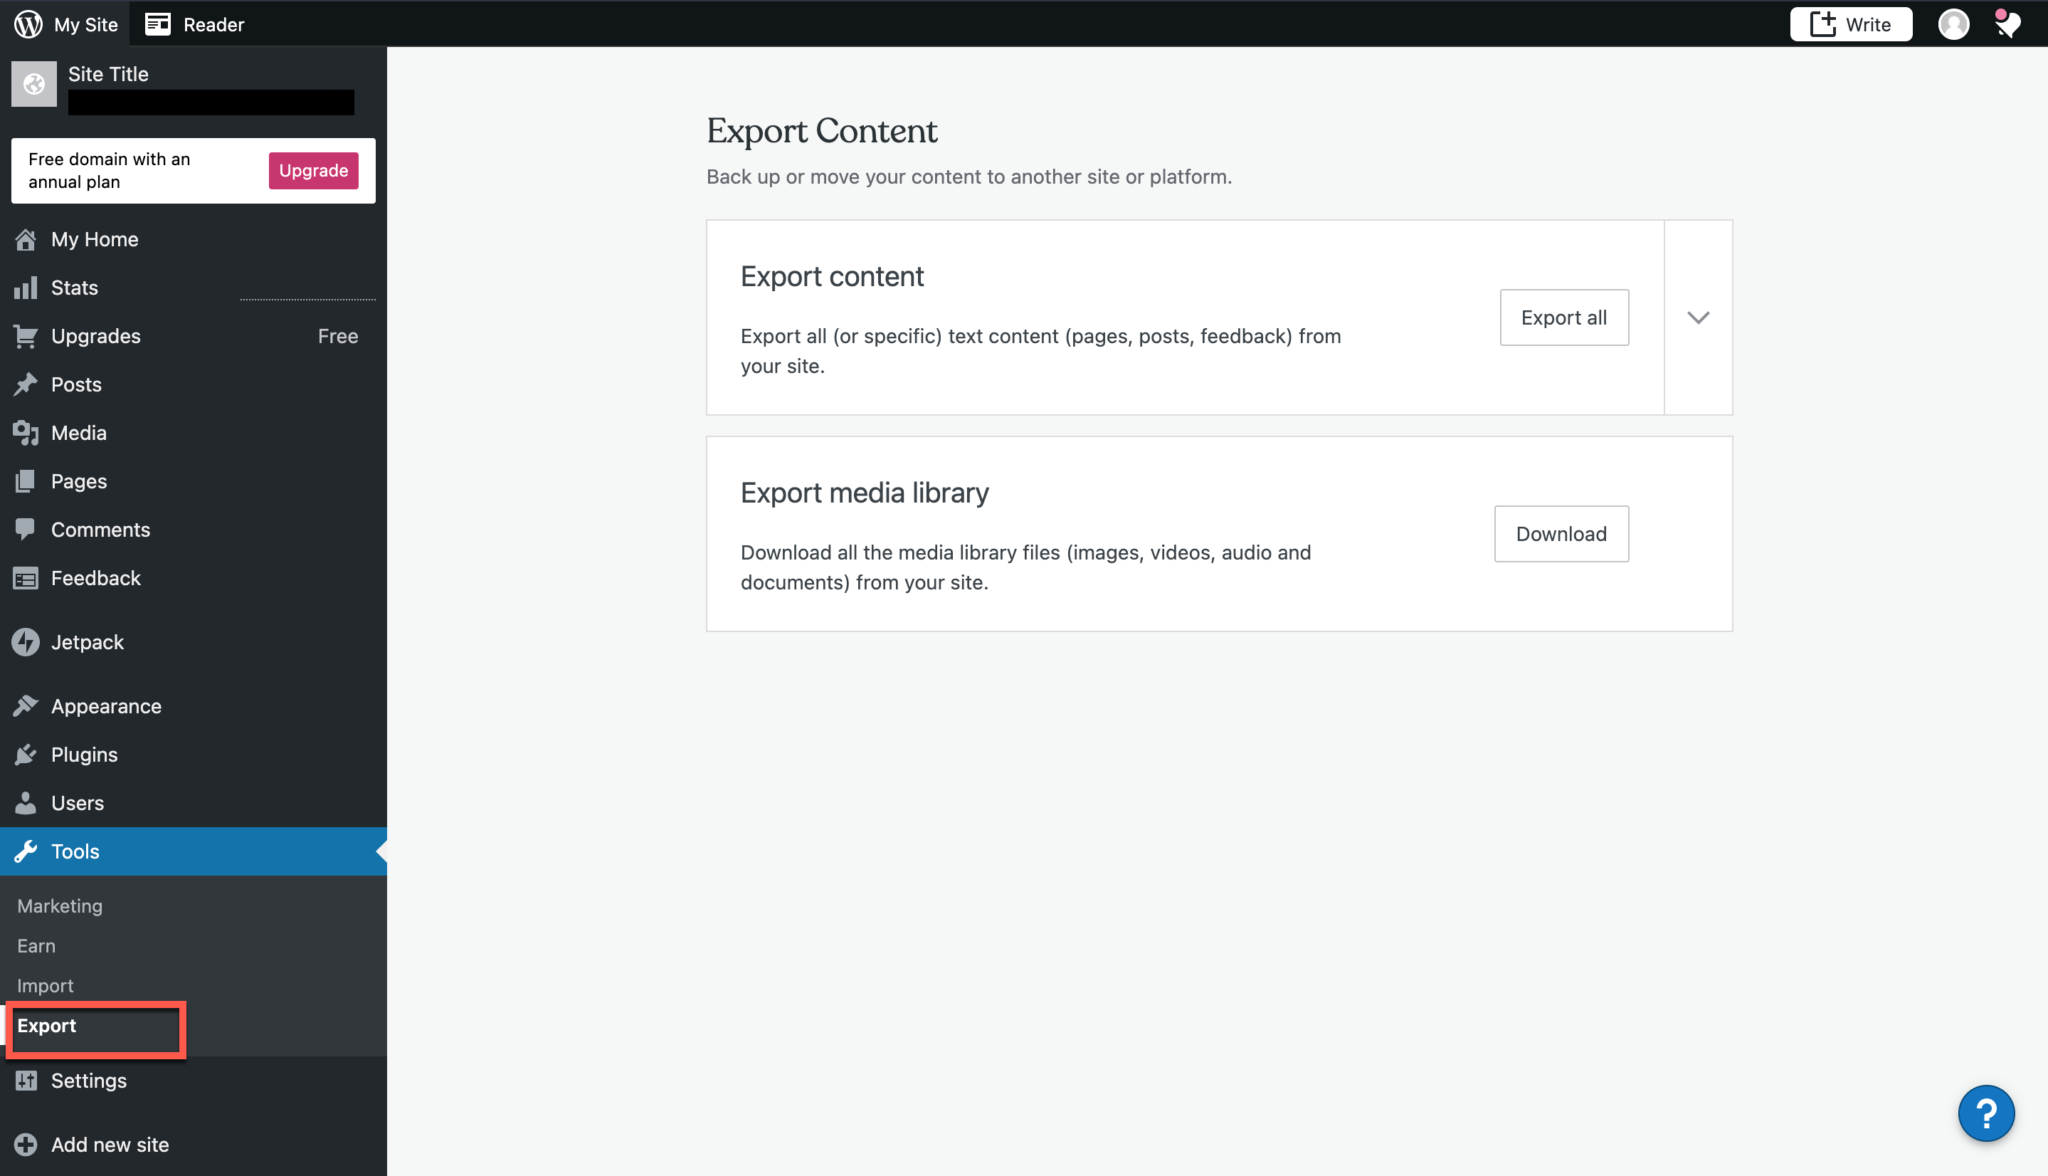 How to Use the WordPress Export Tool